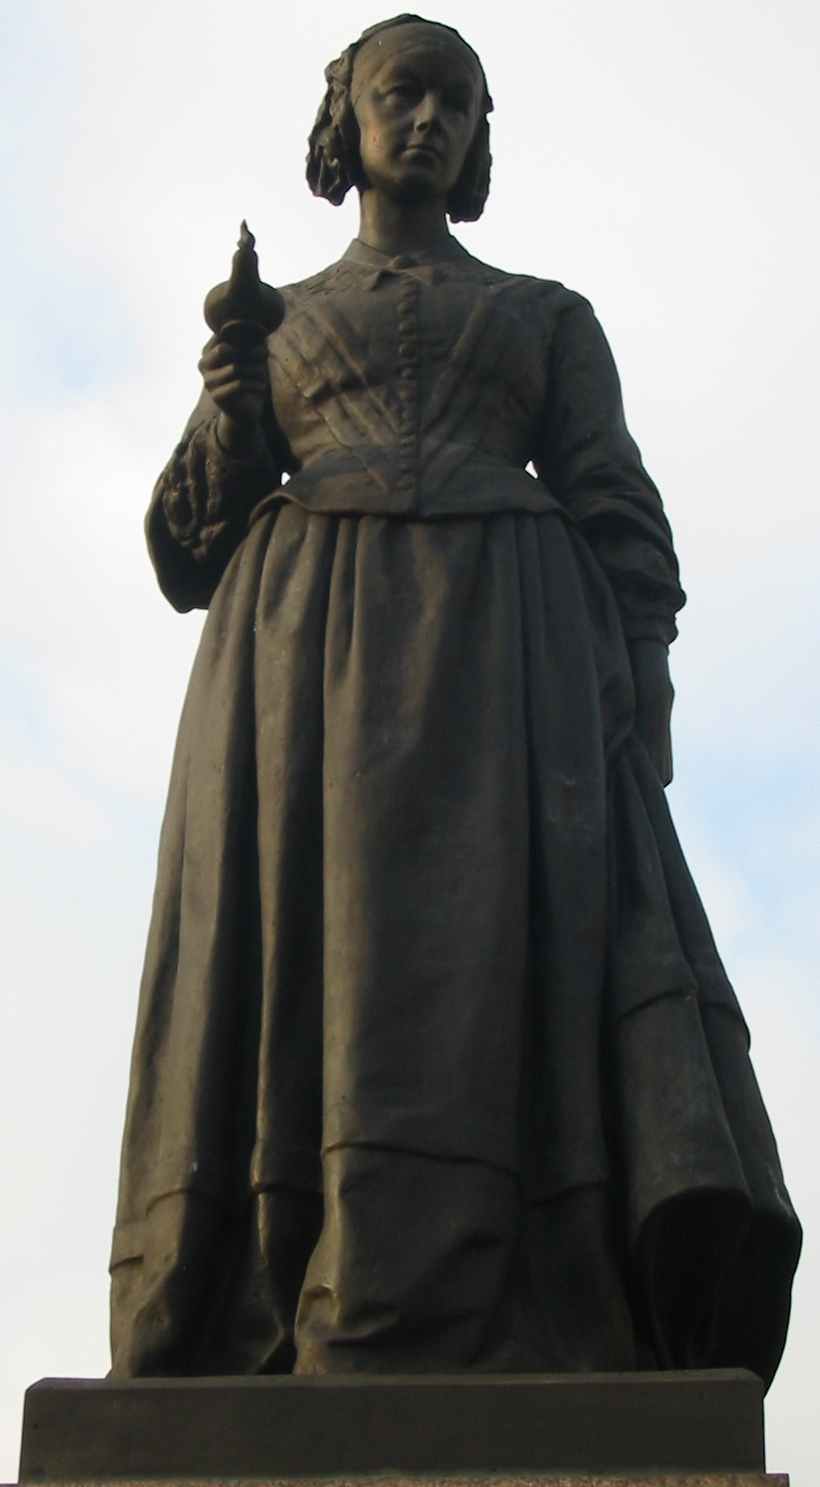 Florence Nightengale monument in London, England